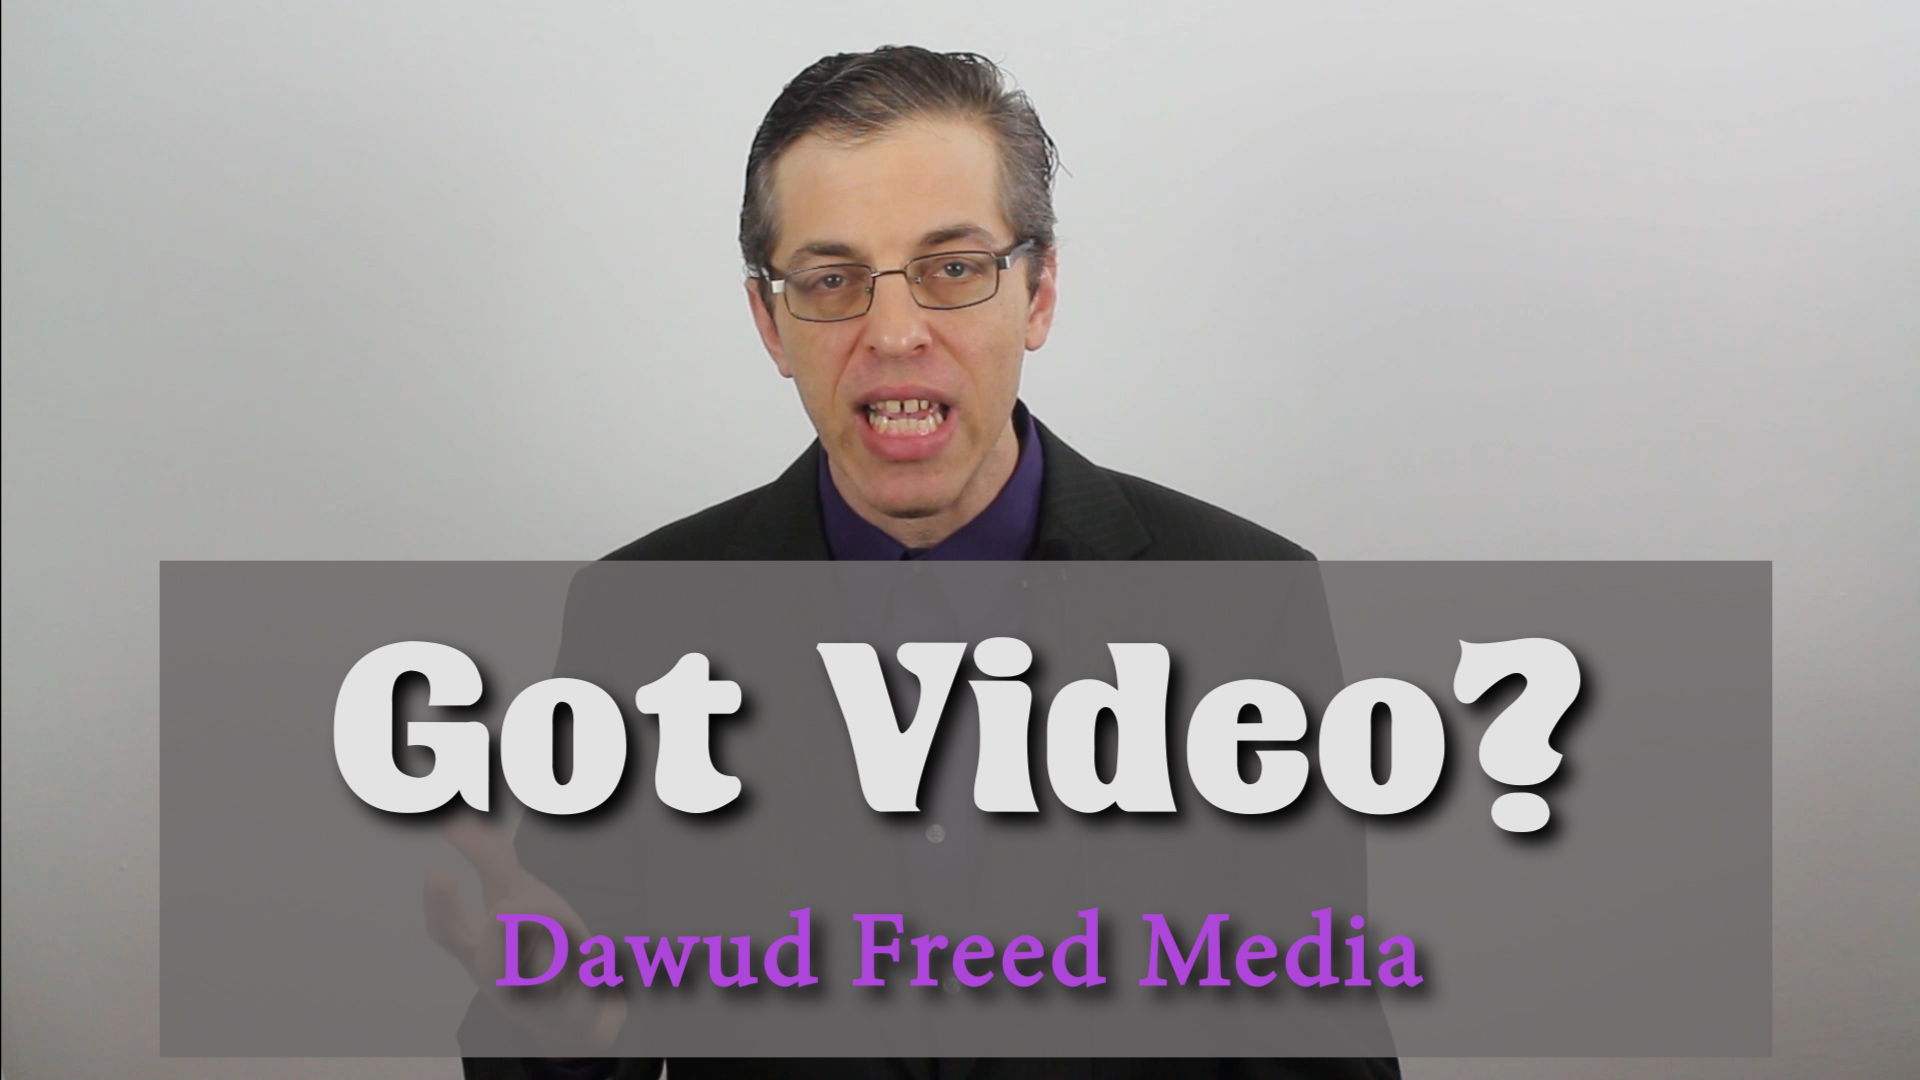 Dawud Freed Media Got Video